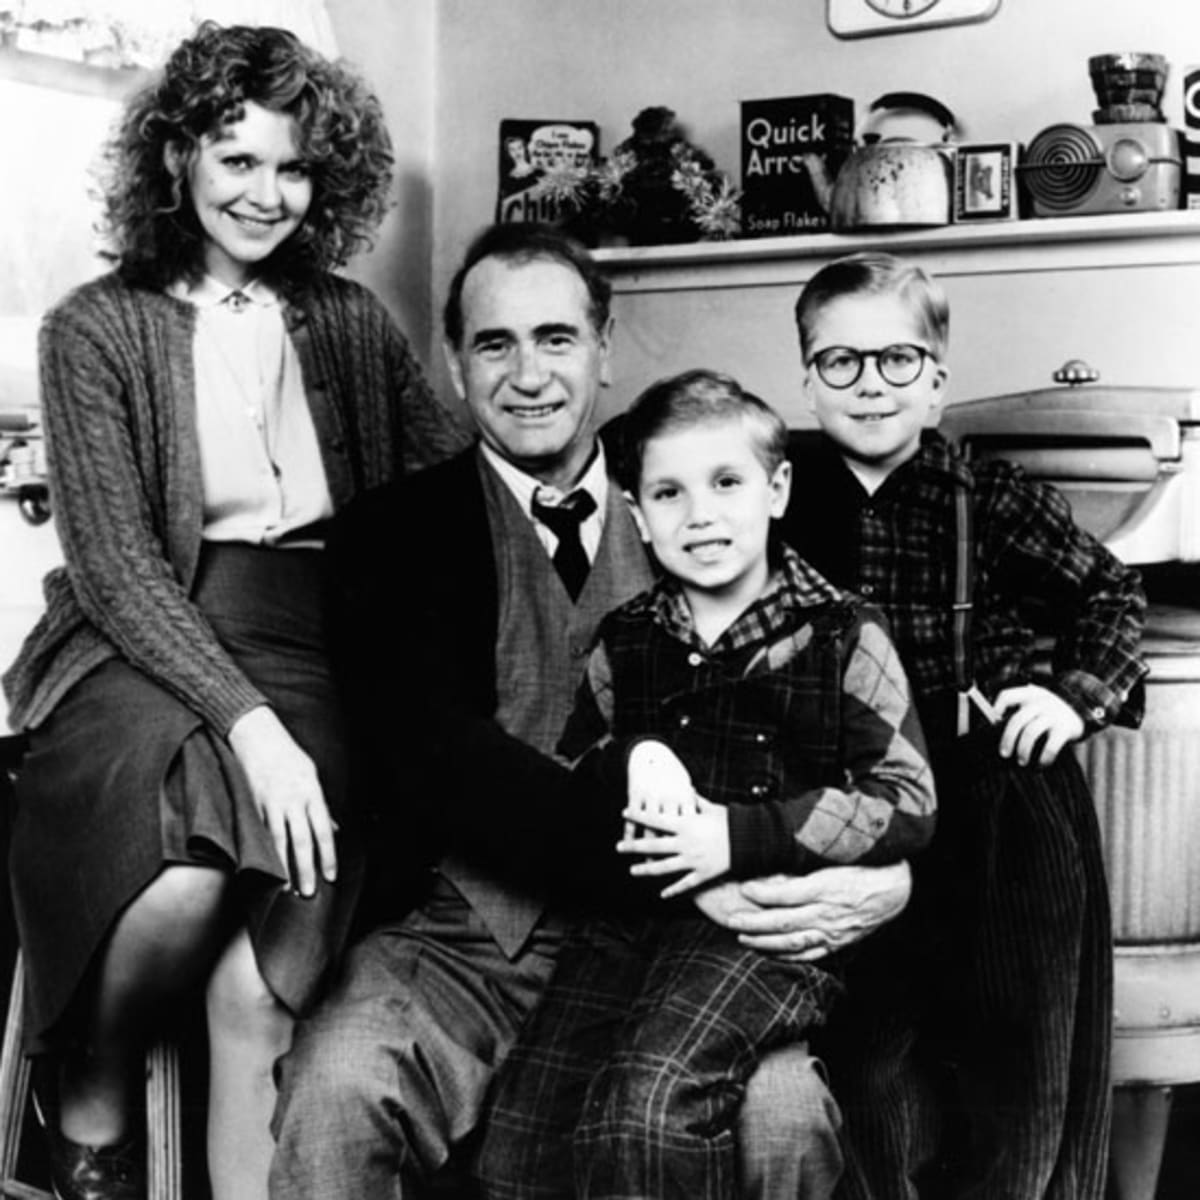 A Christmas Story Cast 2020 A Christmas Story' Cast: Where Are They Now?   Biography